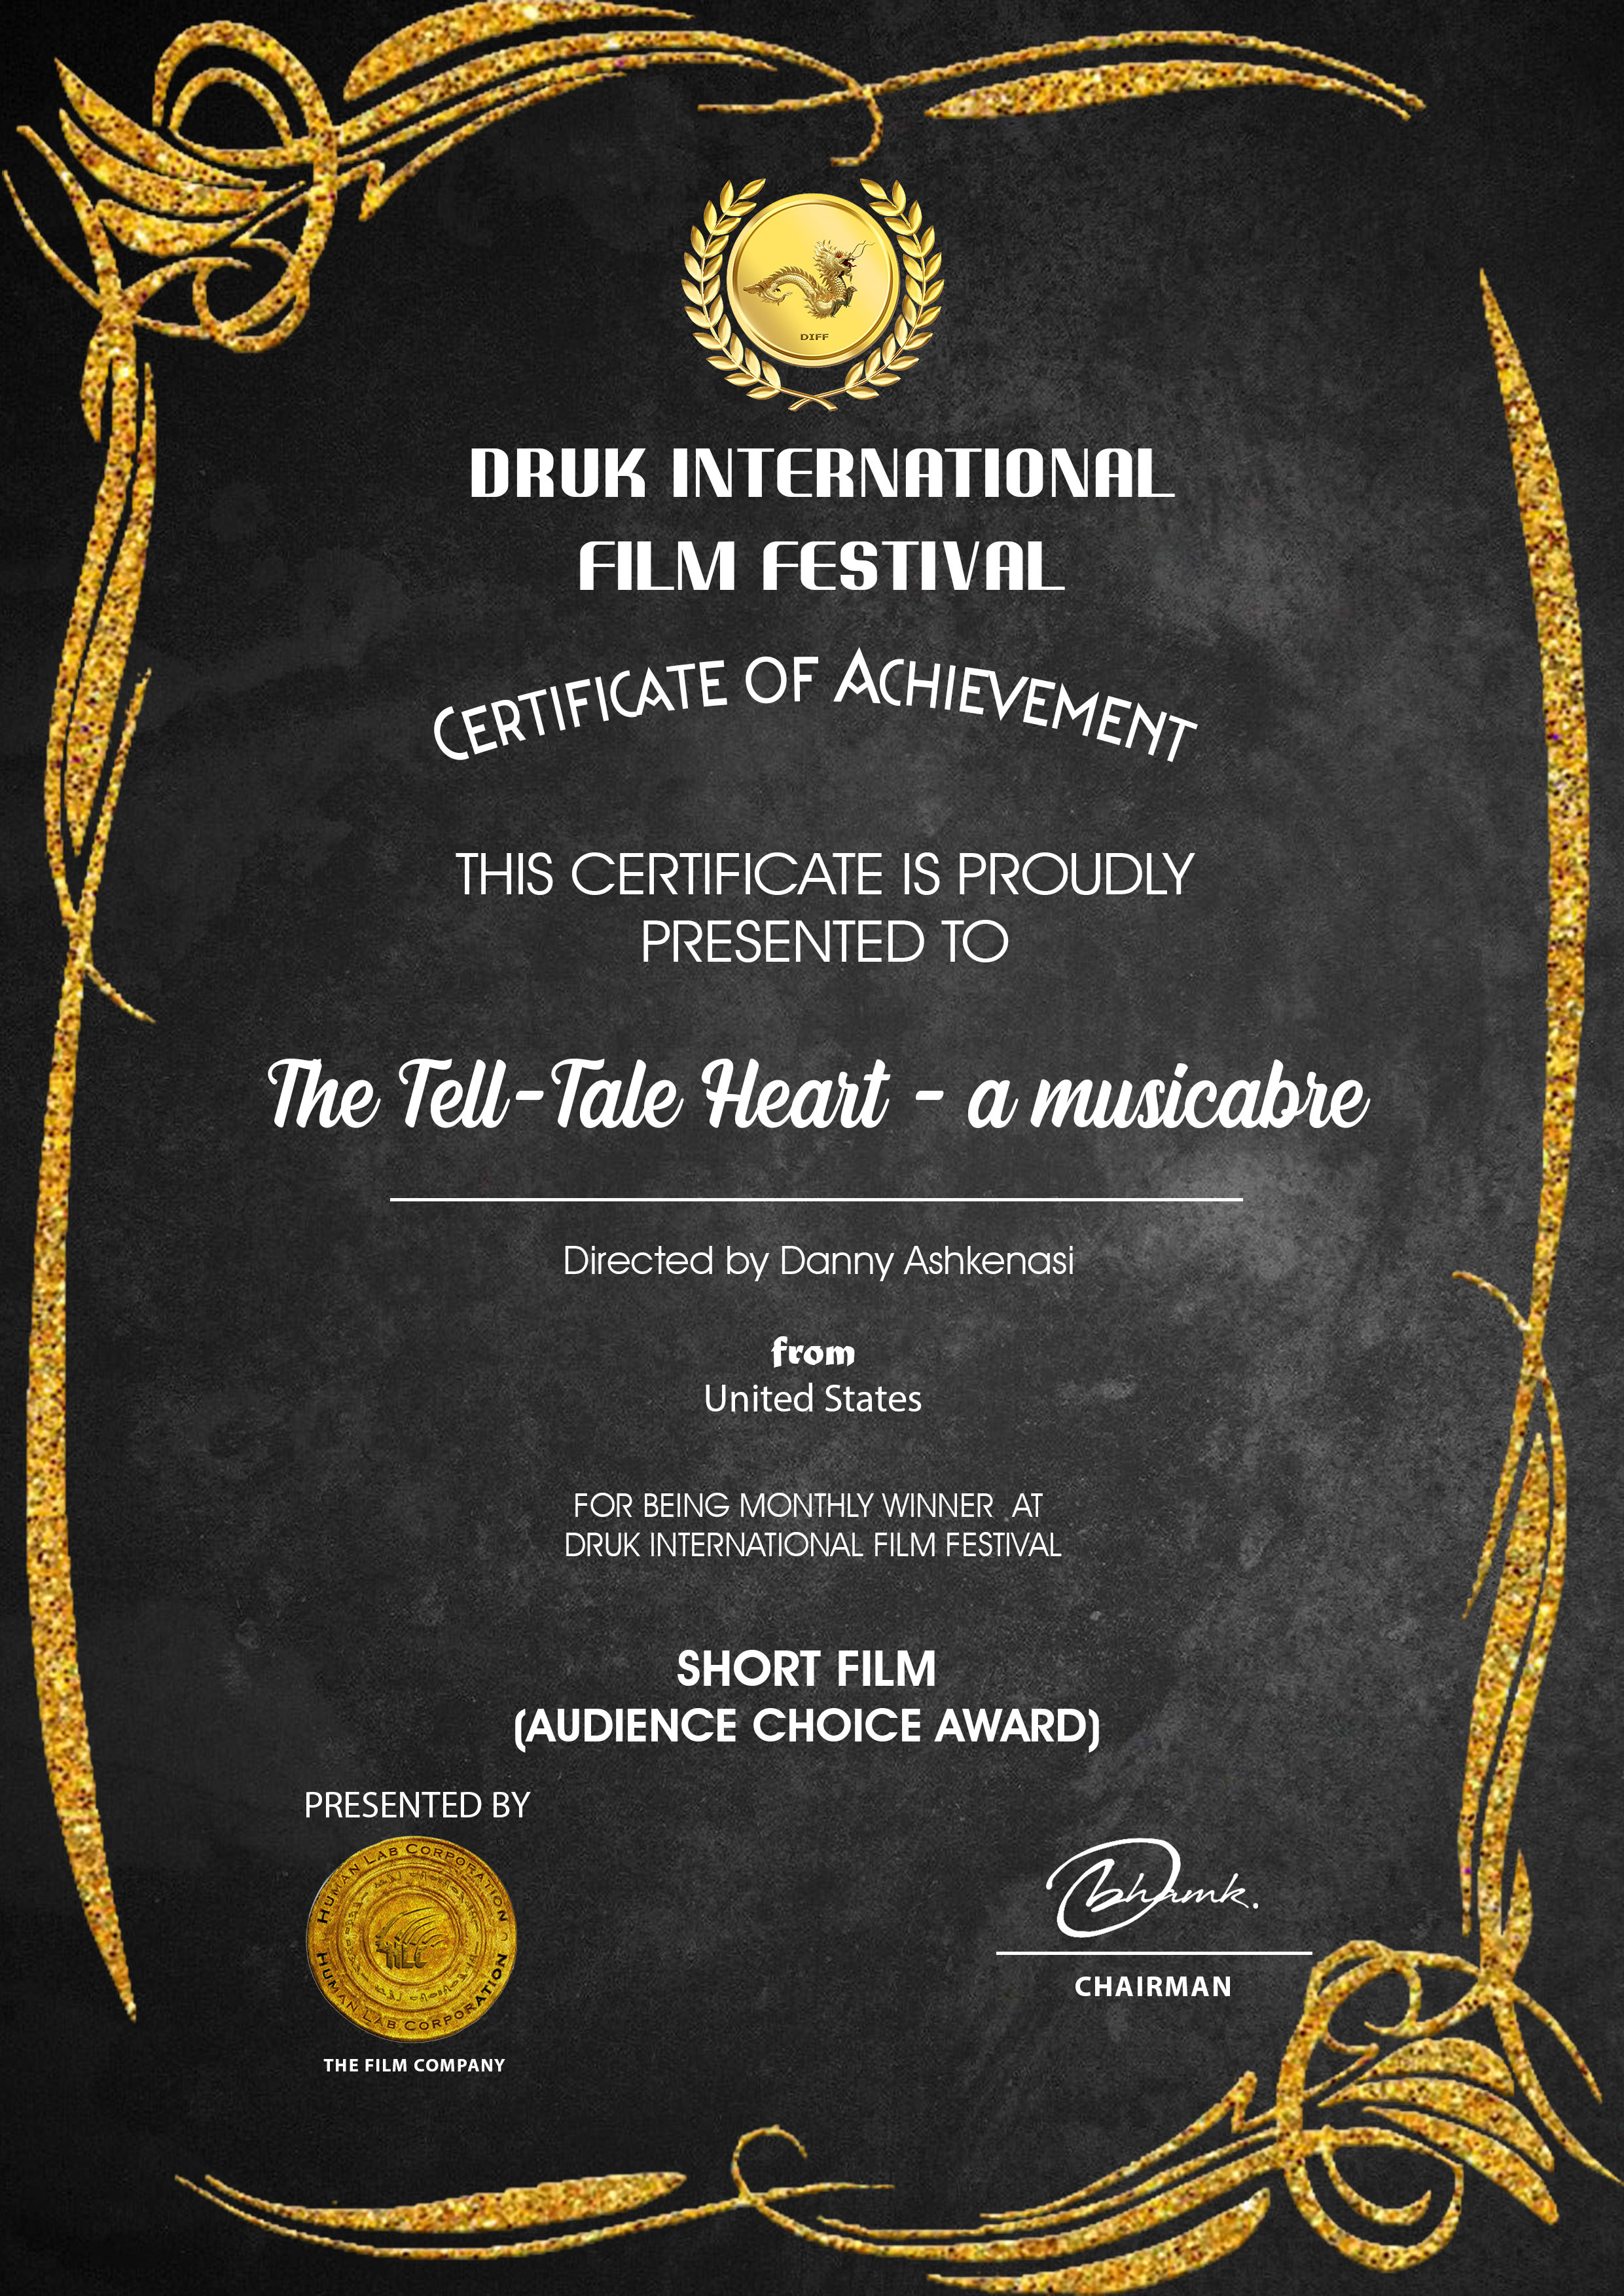 Druk Certificate The Tell-Tale Heart - a musicabre